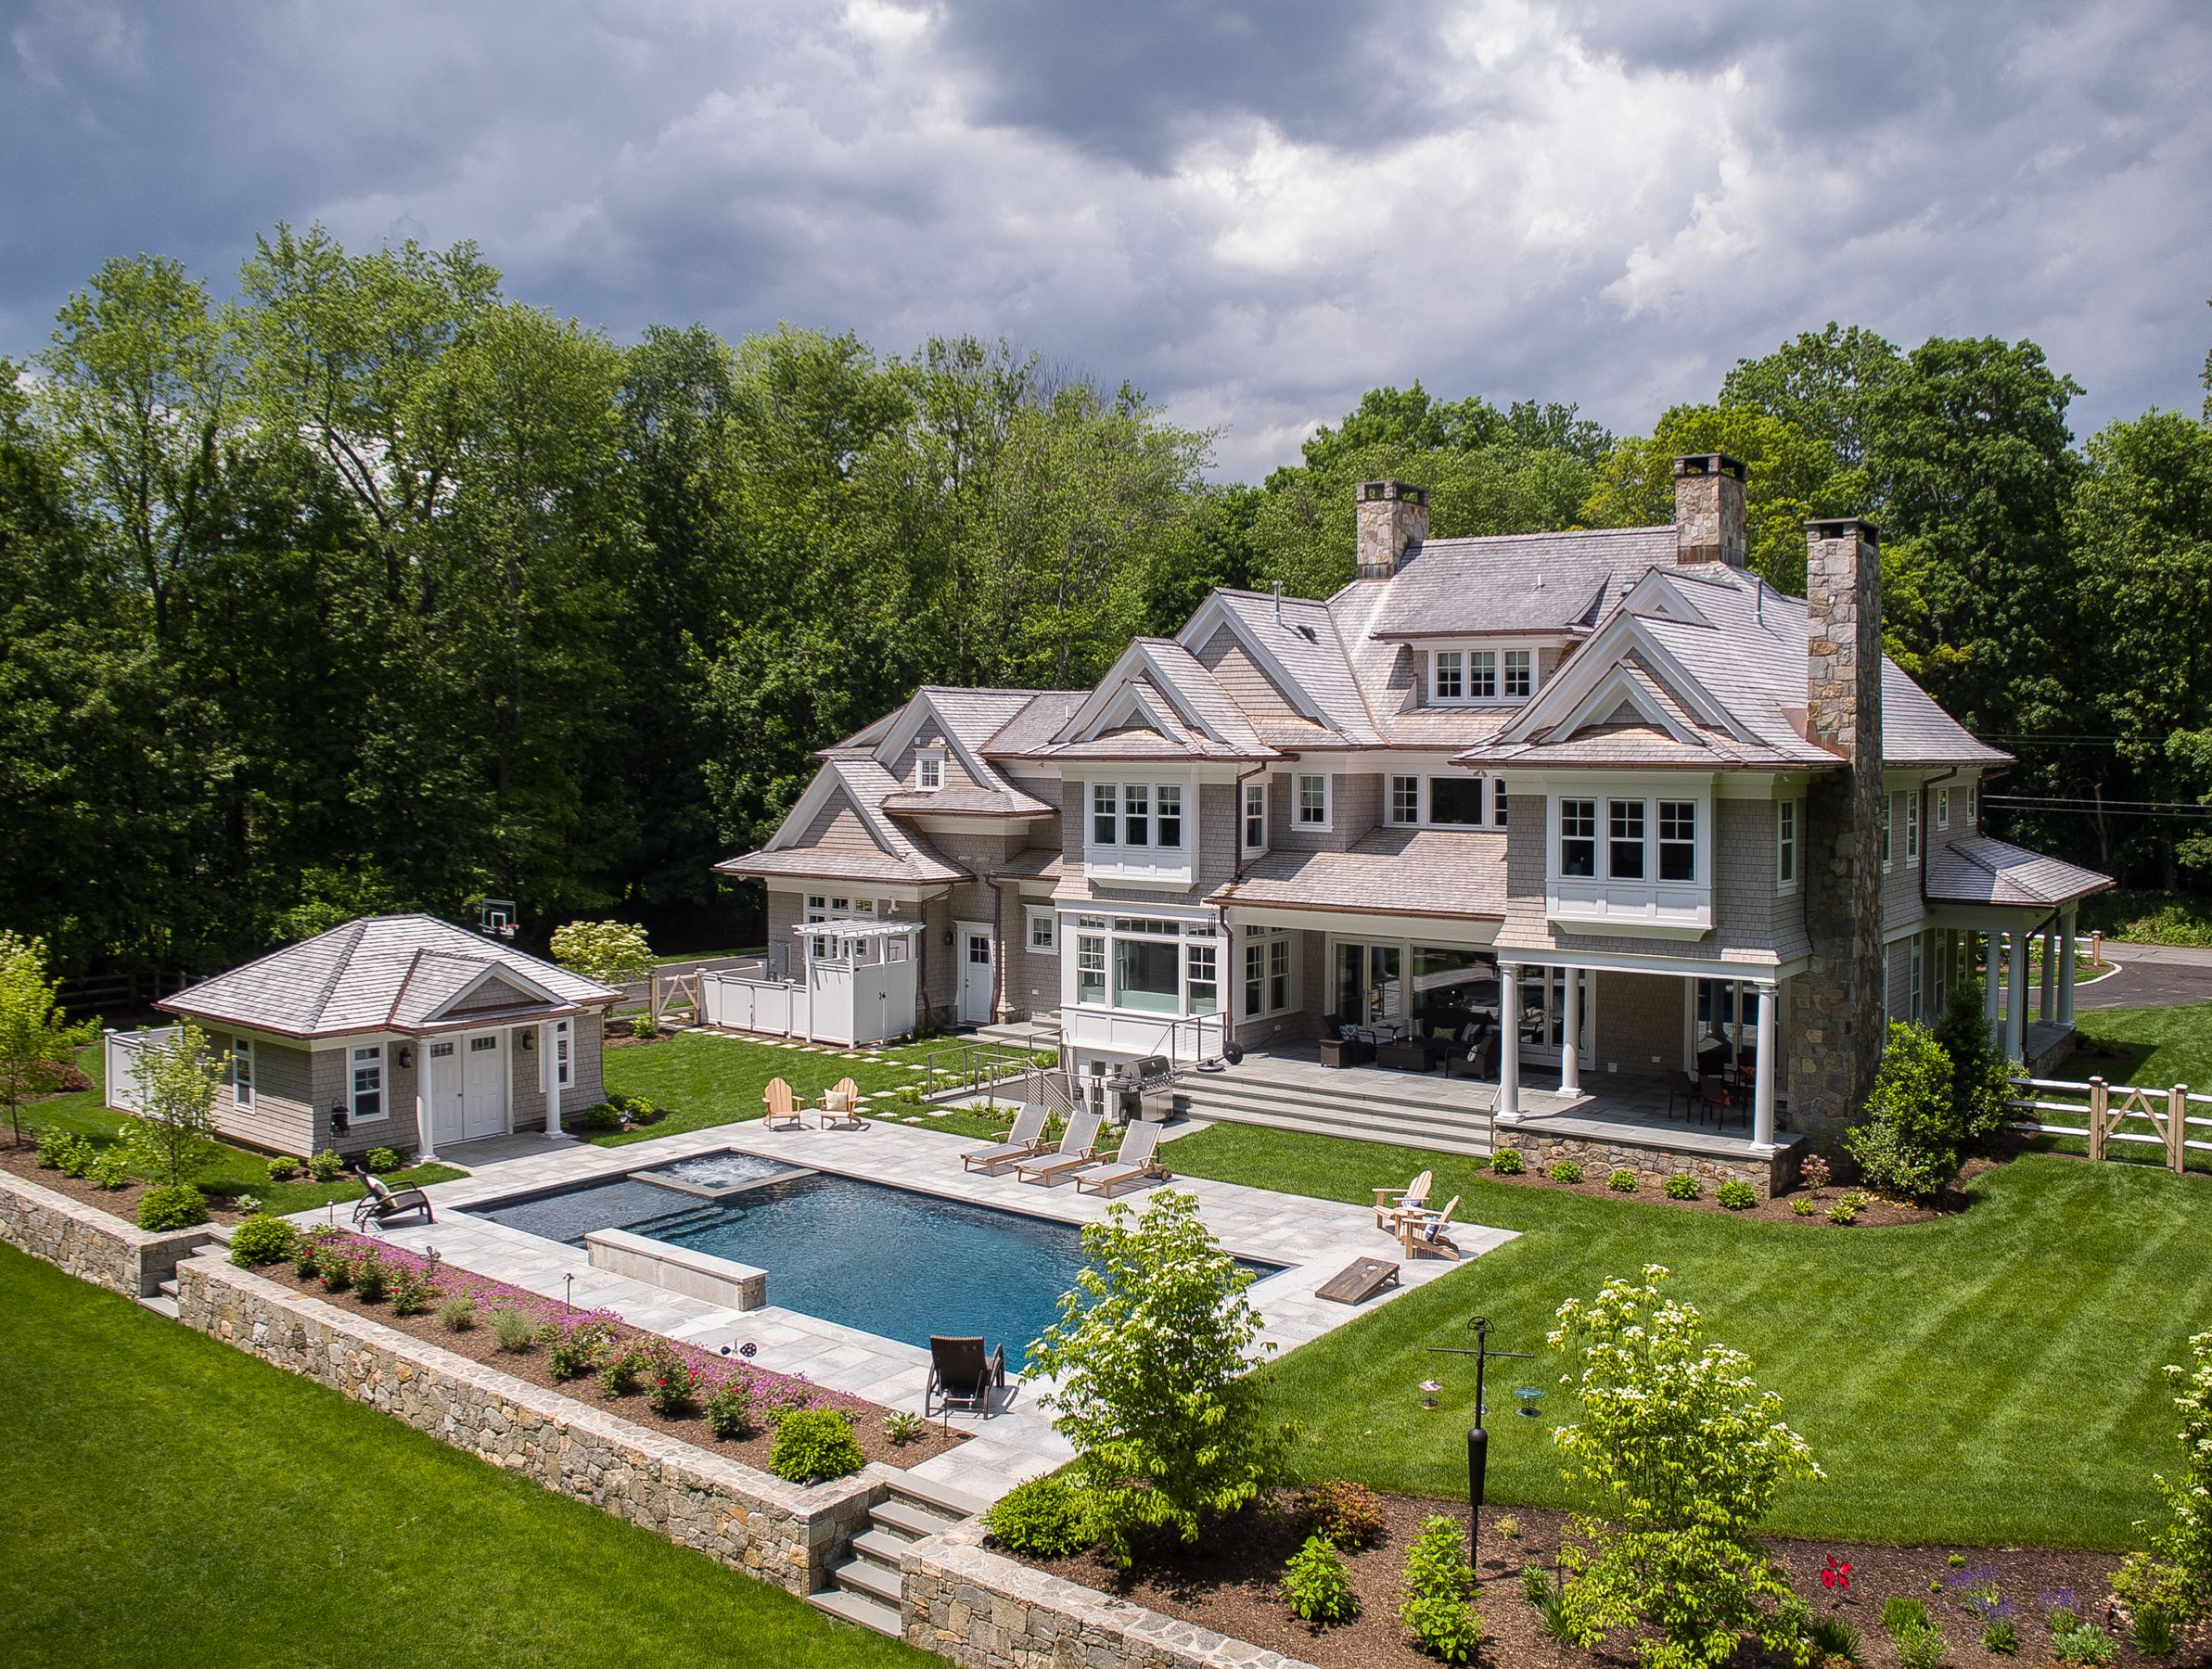 Shingle Style Colonial With Pool House Spa Pool Houses Shingle Style Homes Shingle Style